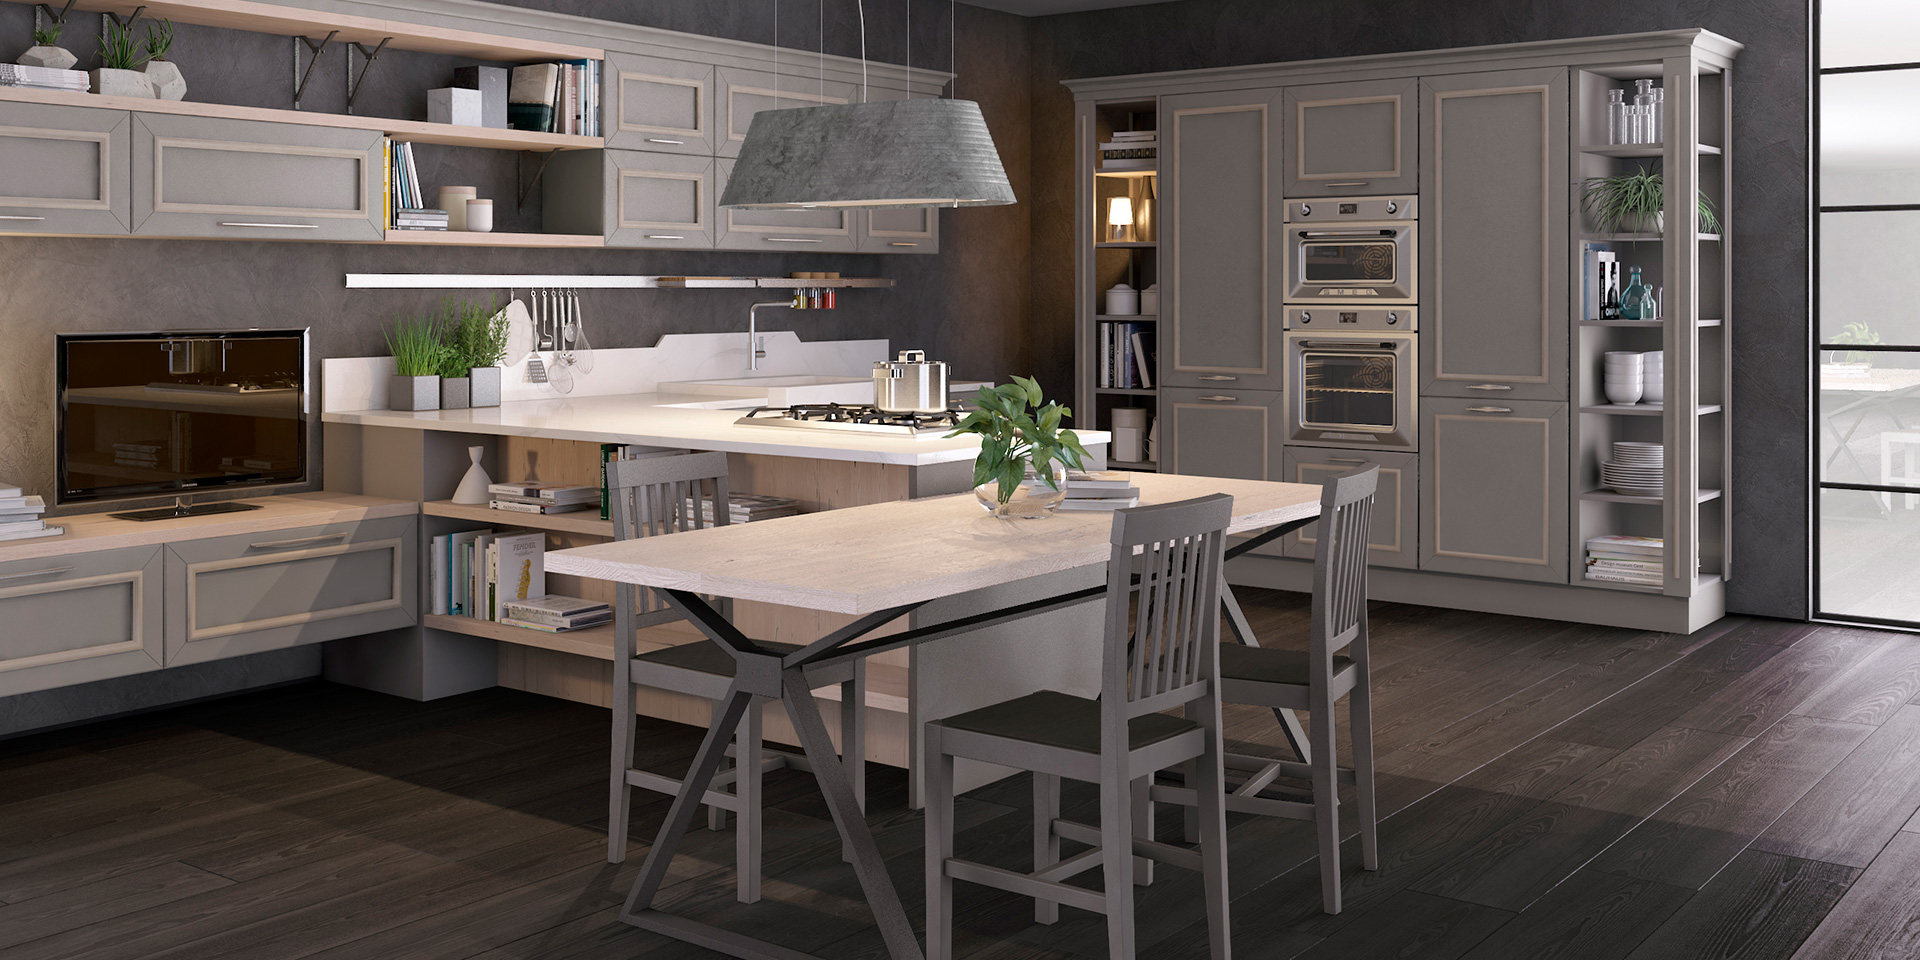 Emejing Cucine Country Padova Pictures - ubiquitousforeigner.us ...